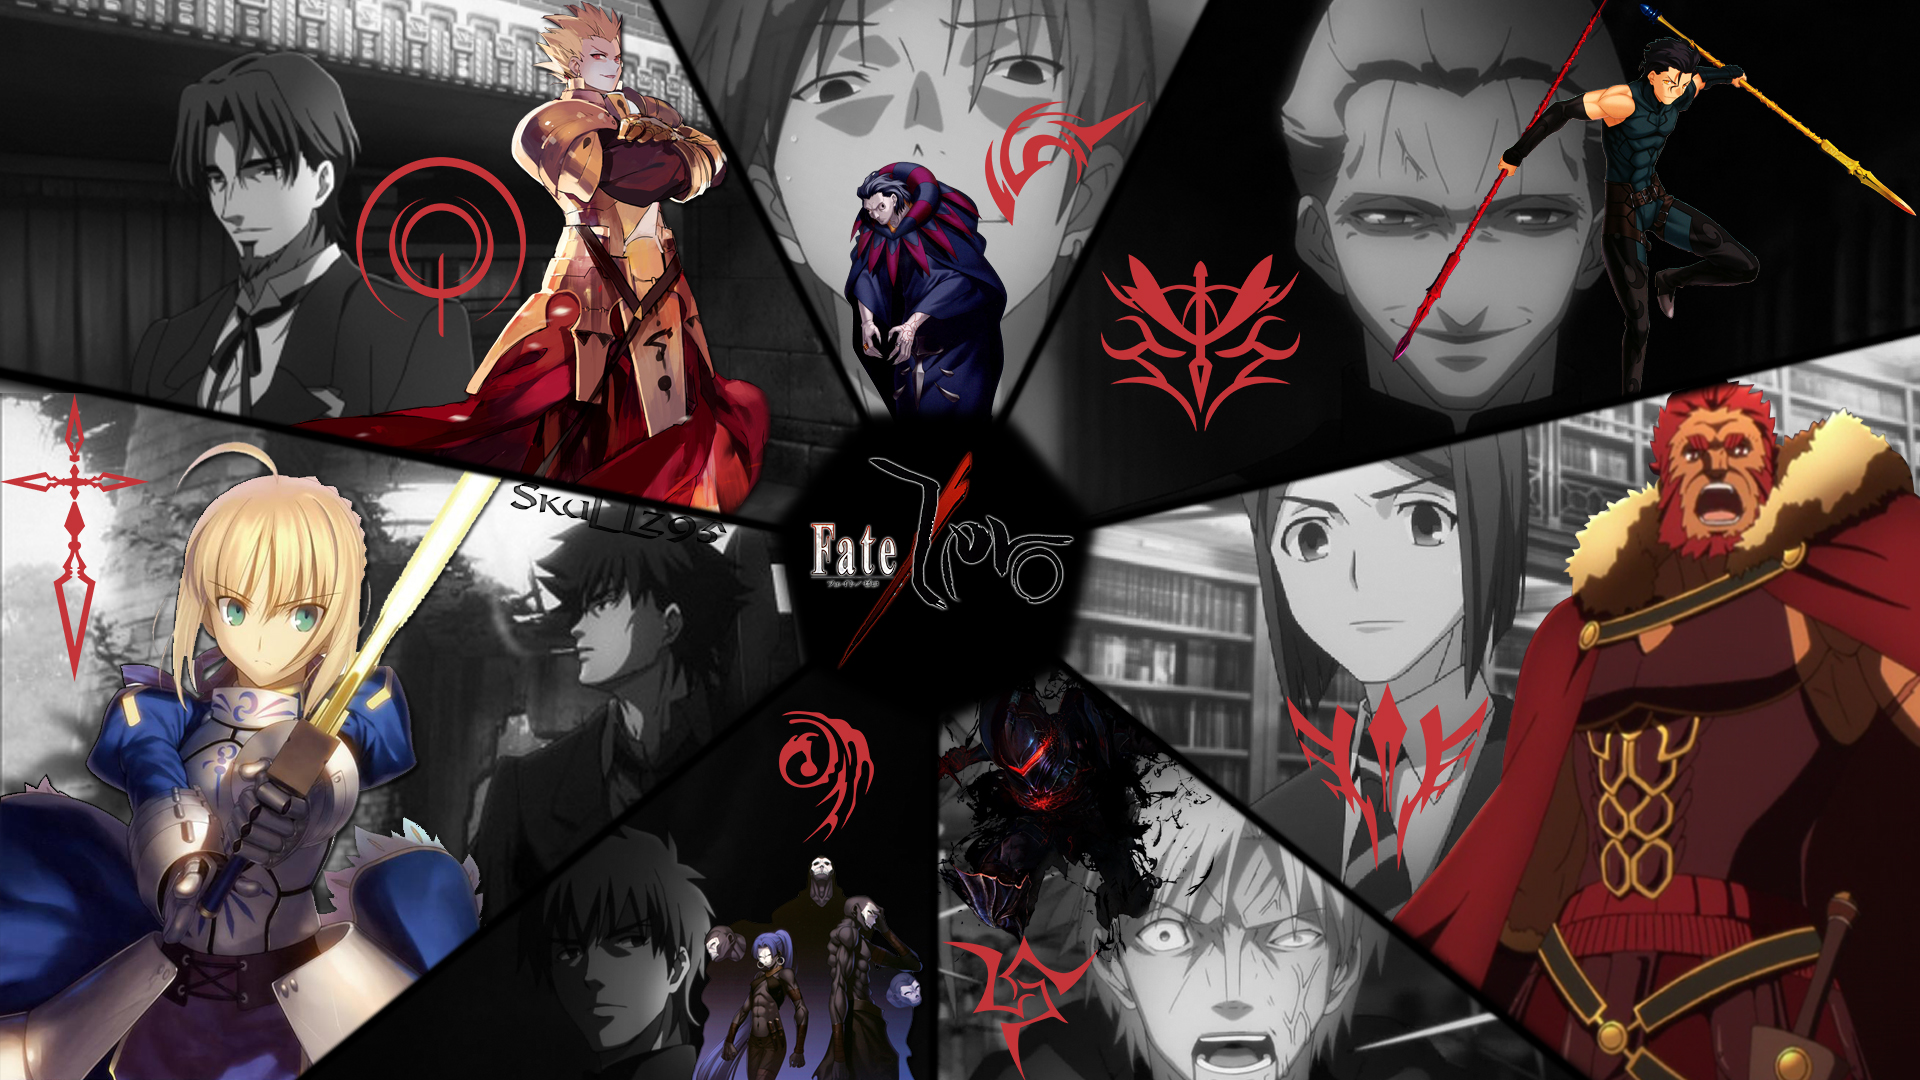 Fate Zero Masters And Servants Wallpaper By Skullz95 D9jrwq8